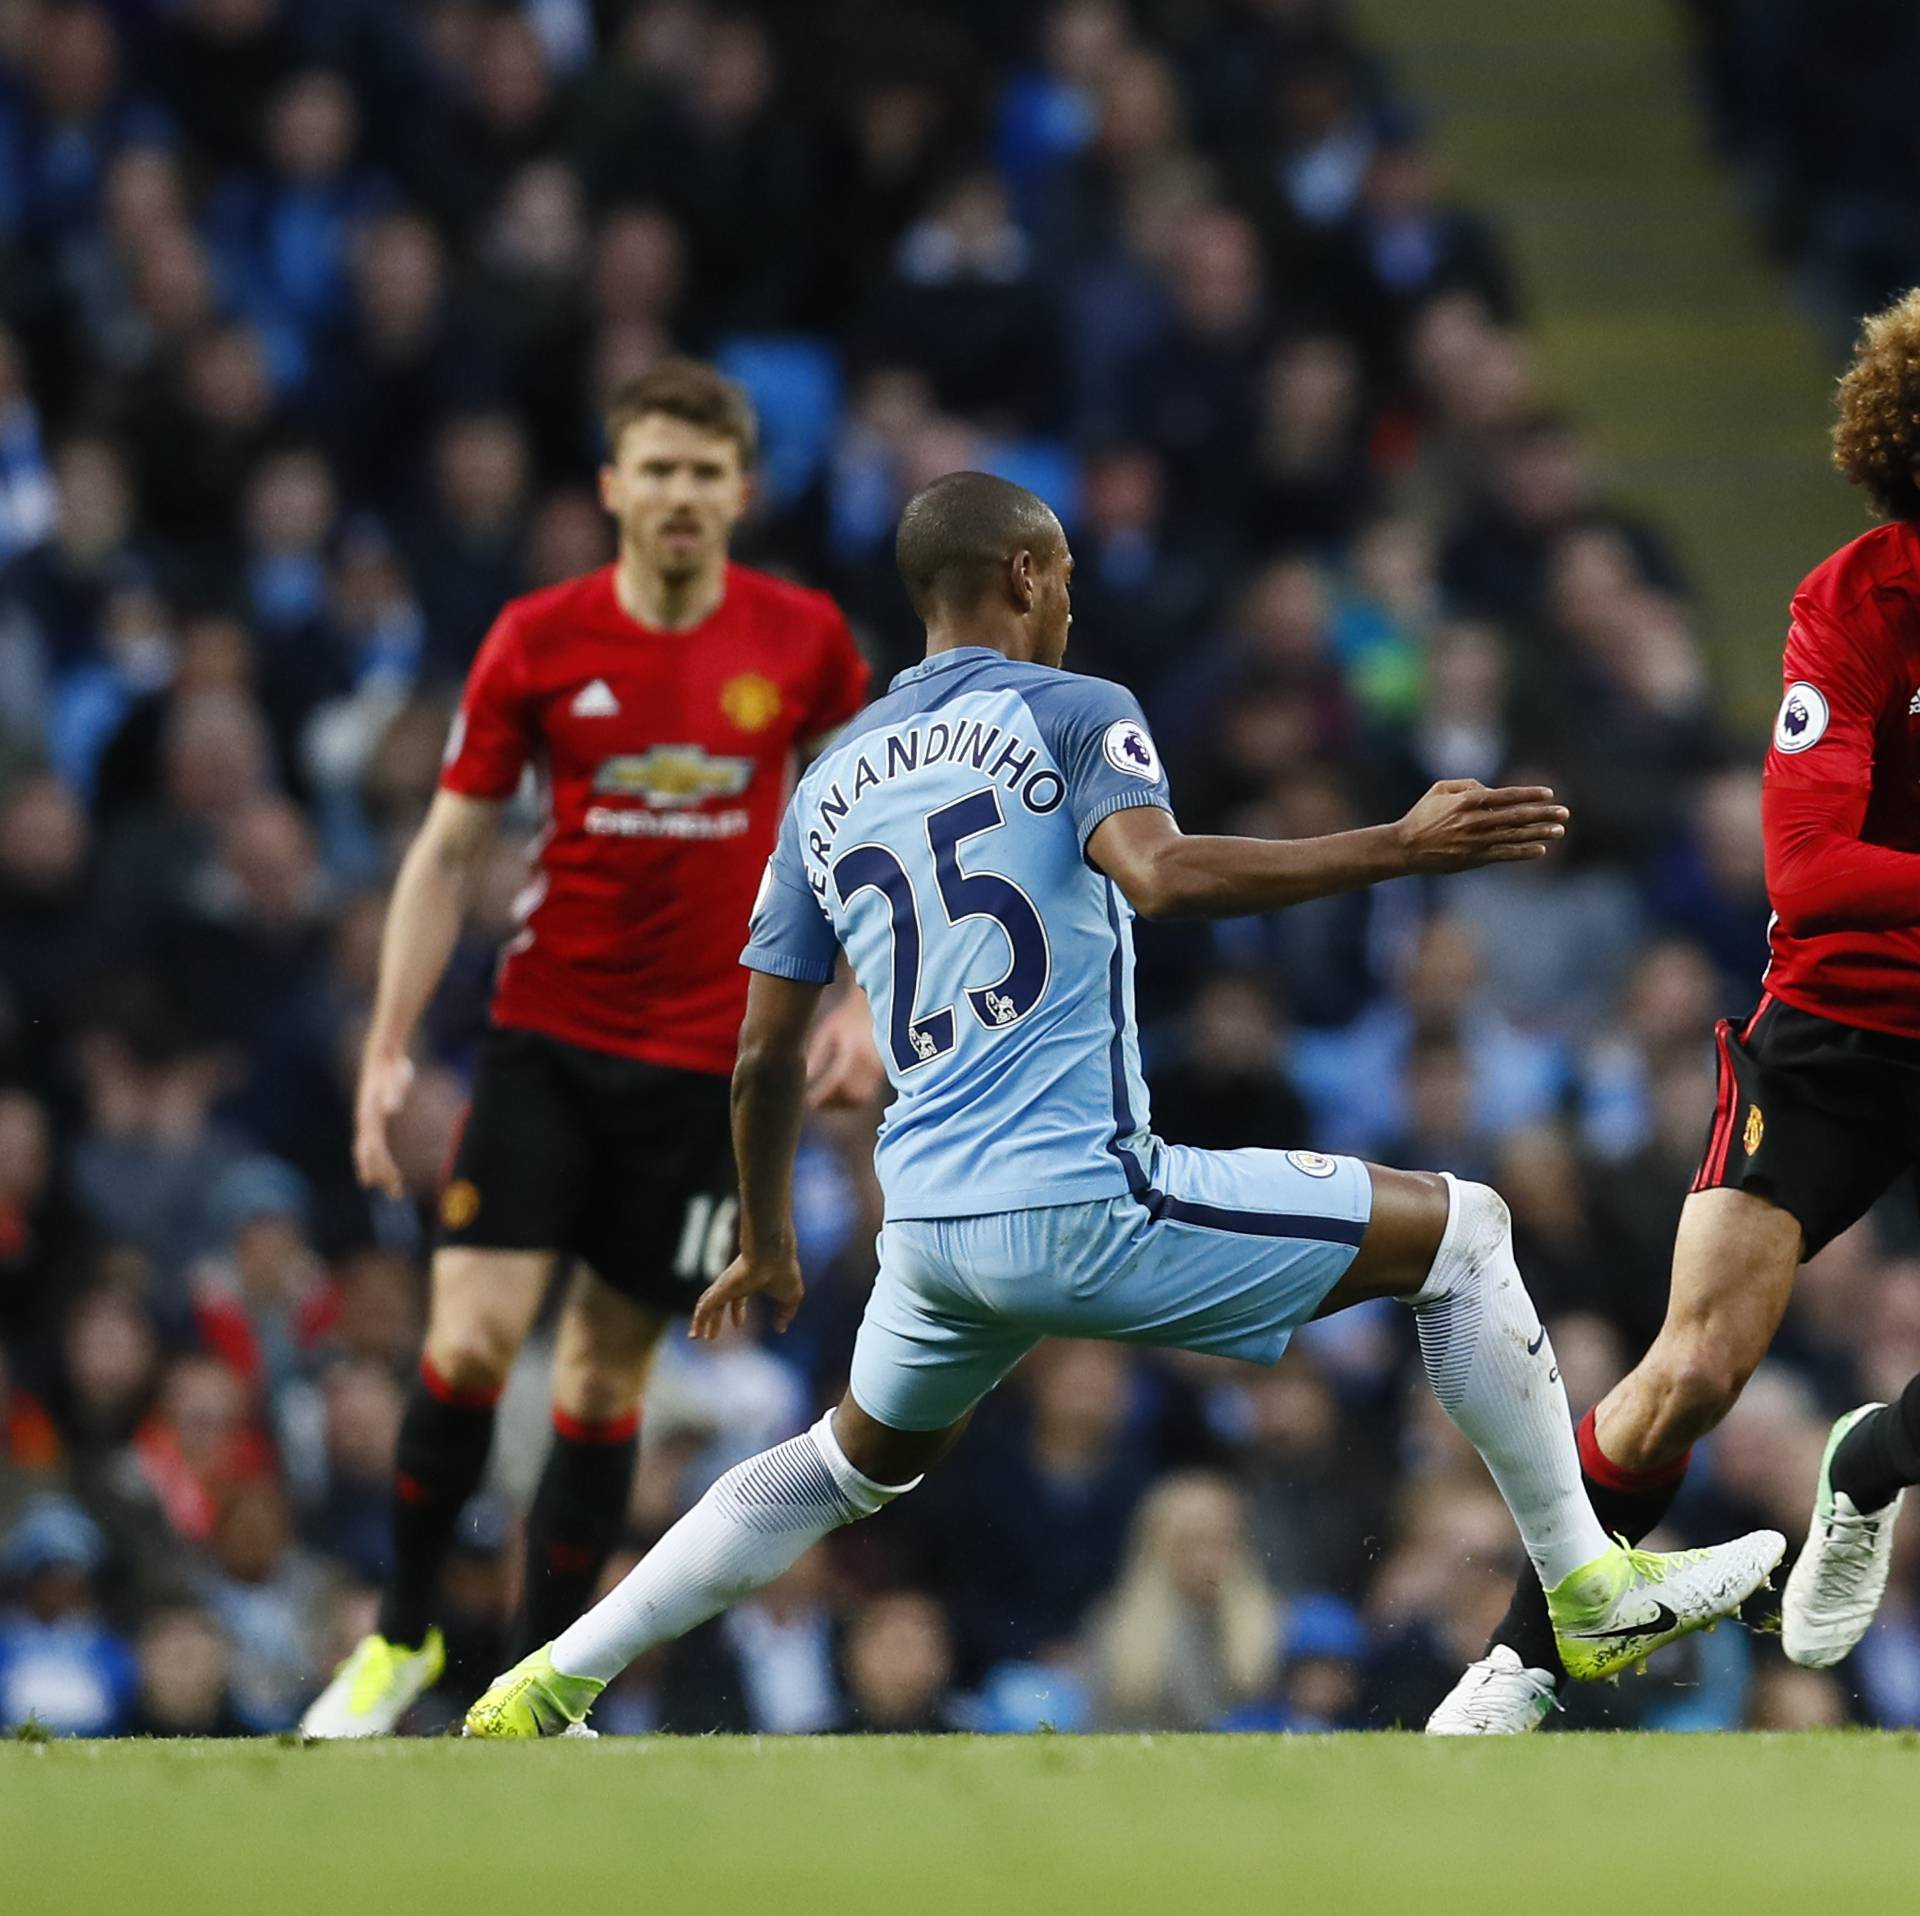 Manchester City's Fernandinho in action with Manchester United's Marouane Fellaini